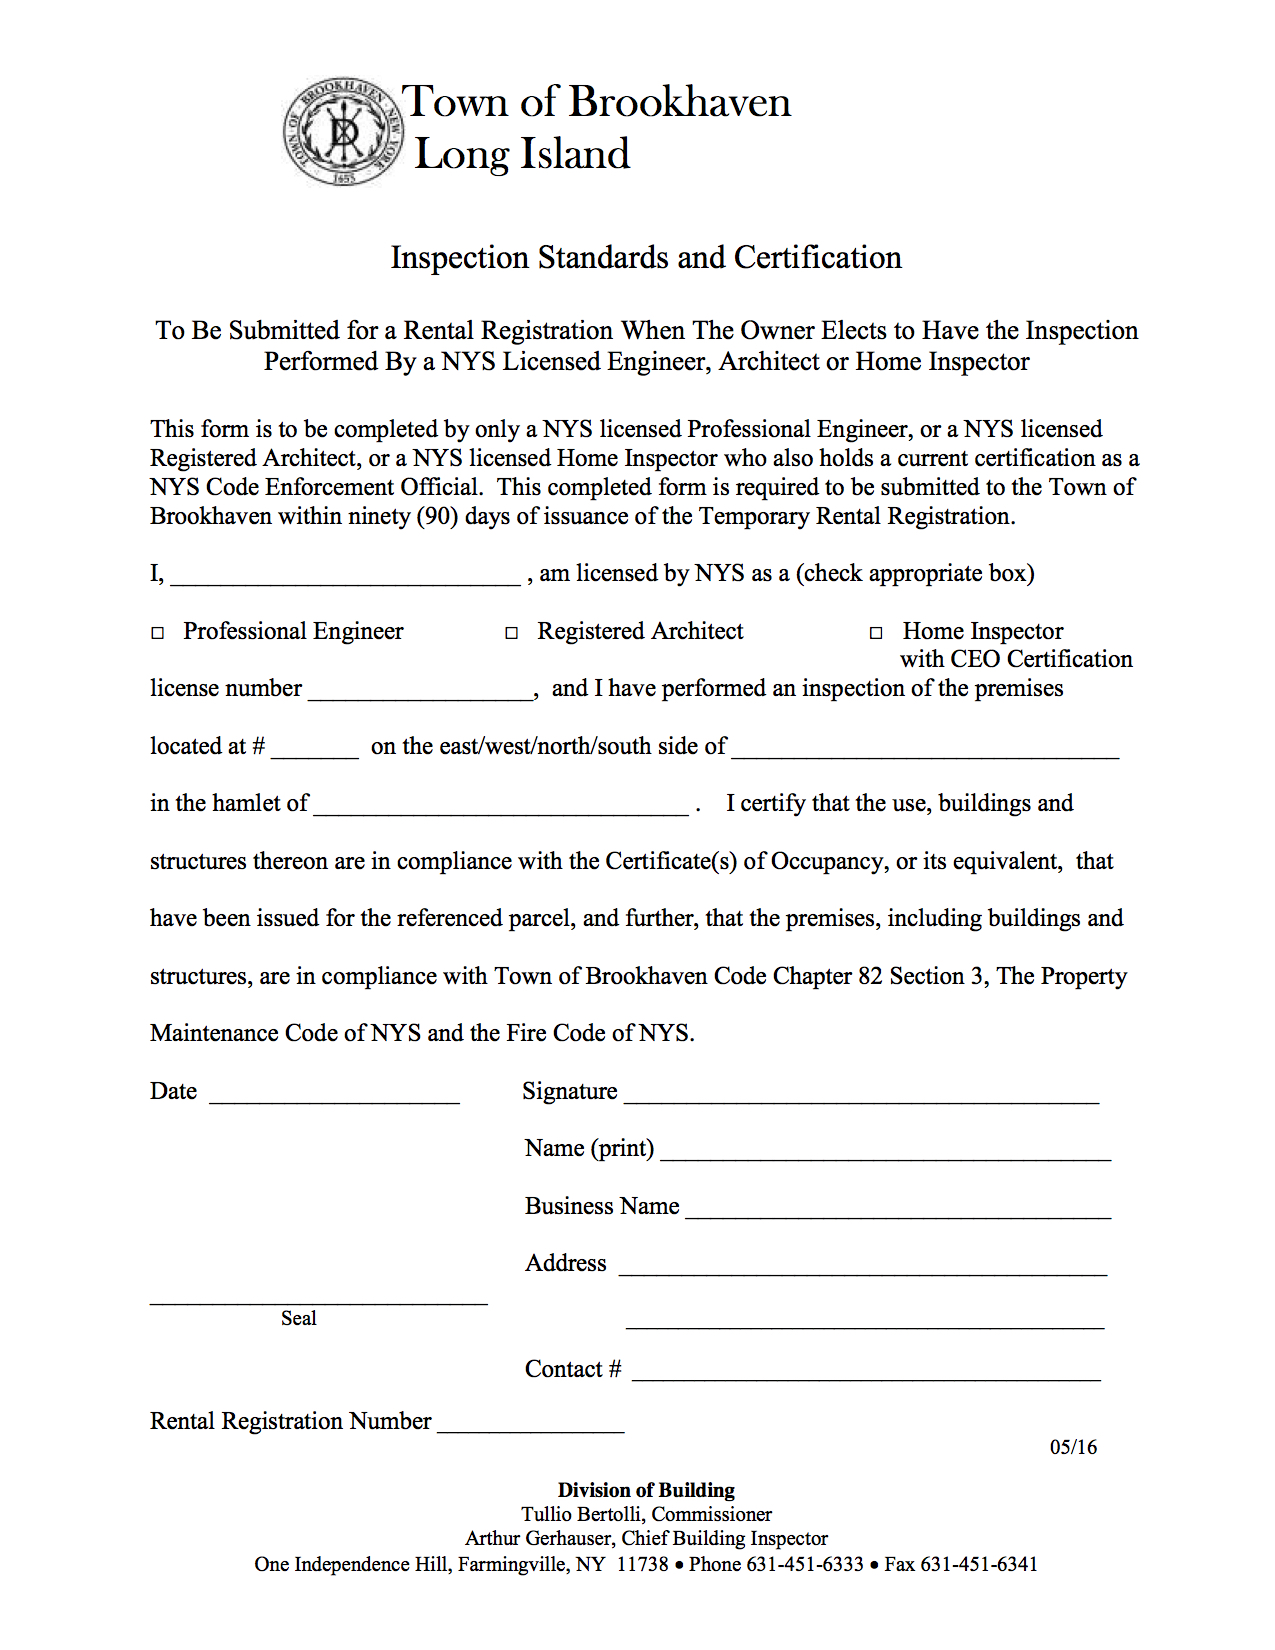 Inspection Standards and Certification--Chapt 82 Certification 4-5-16_3.jpg